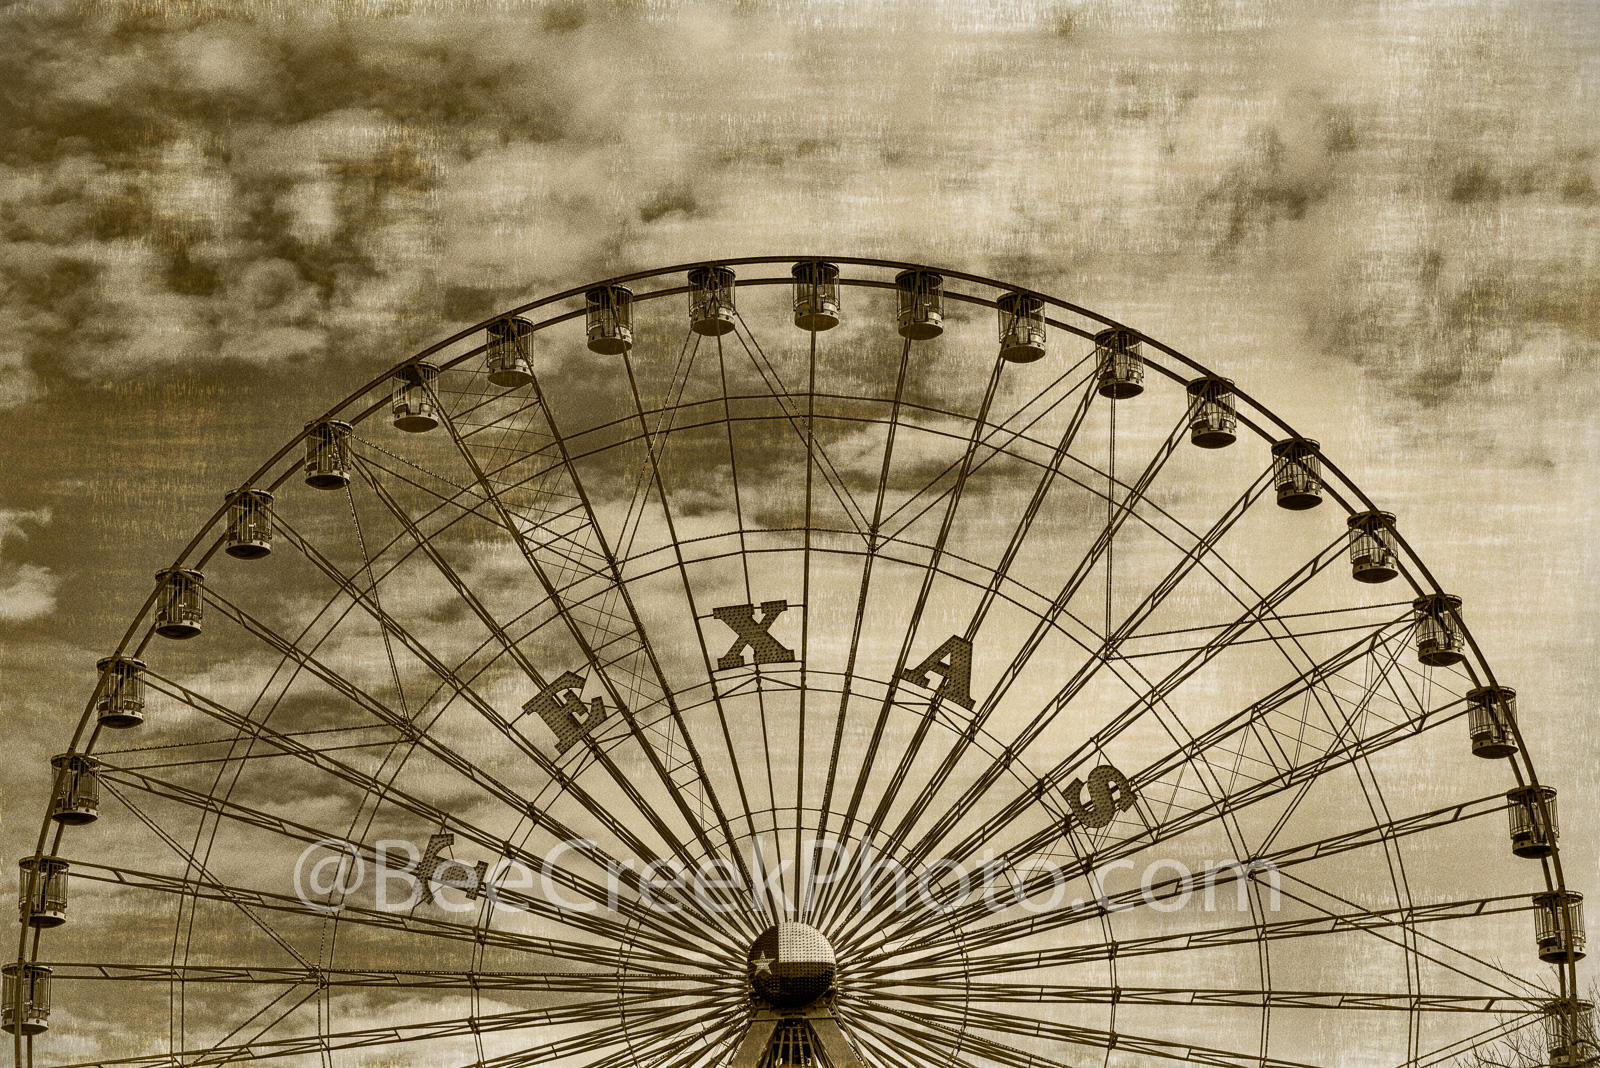 Dallas, Texas Star, aged, sepia, vintage, amusement park, rides, restaurnts, swan lake, Cotton bowl,